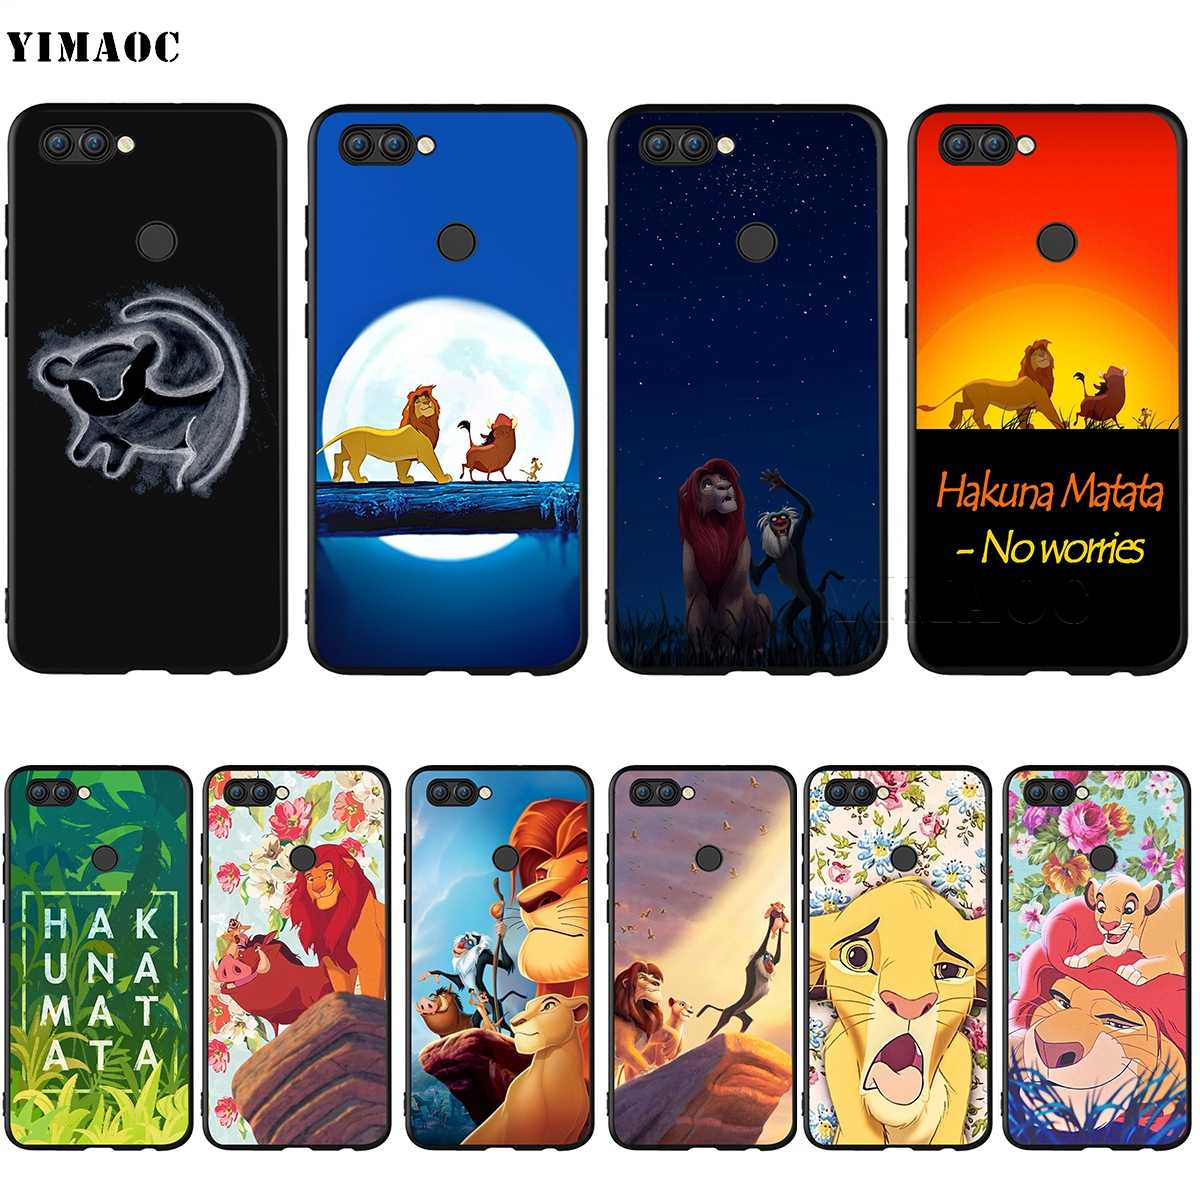 YIMAOC Hakuna Matata Lion King Case for Huawei Mate 10 P8 P9 P10 P20 P30 P Smart Lite Pro Mini 2017